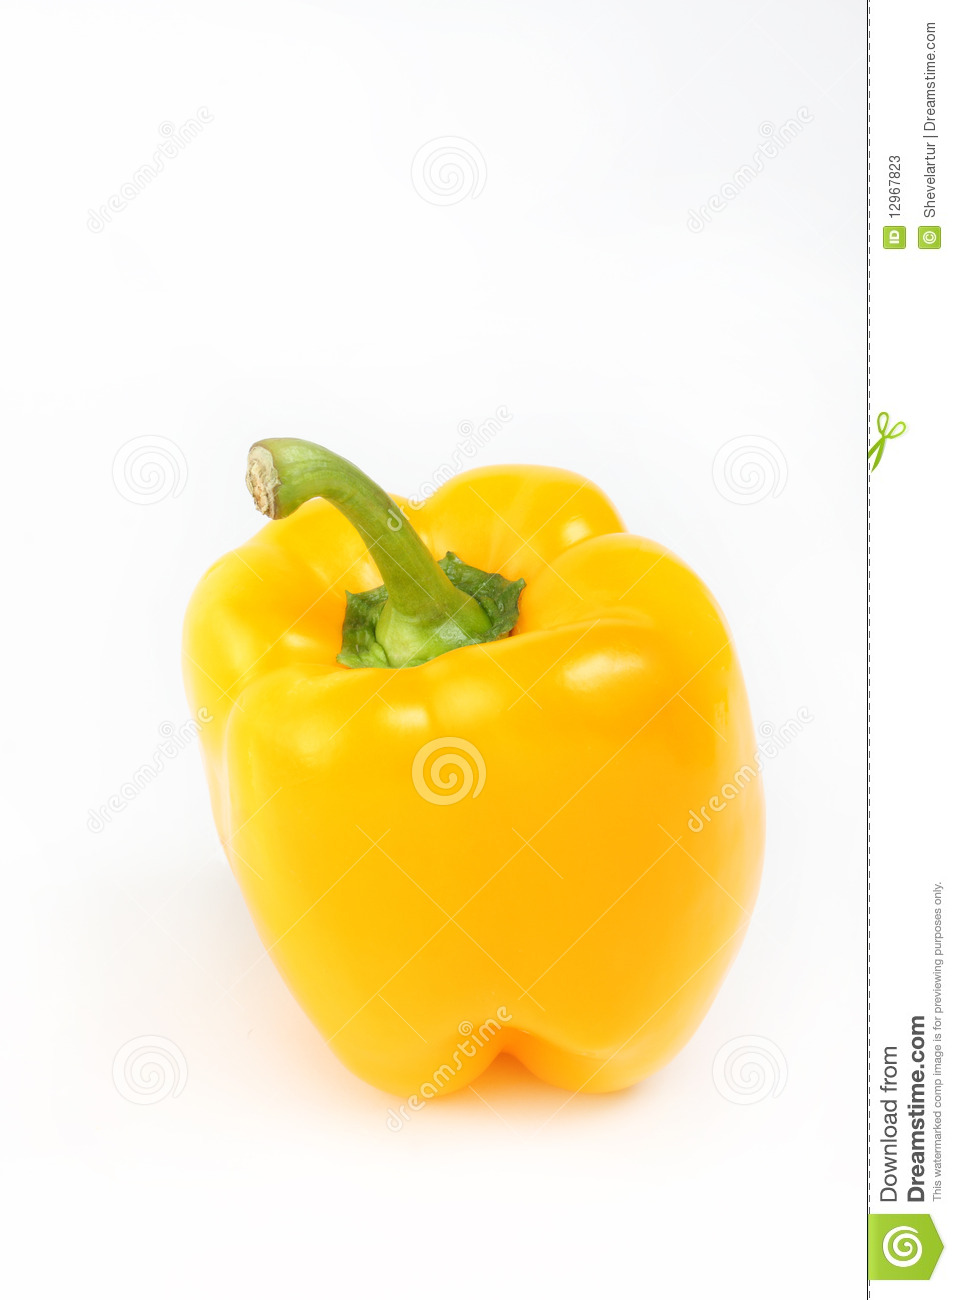 how to cook fresh paprika peppers